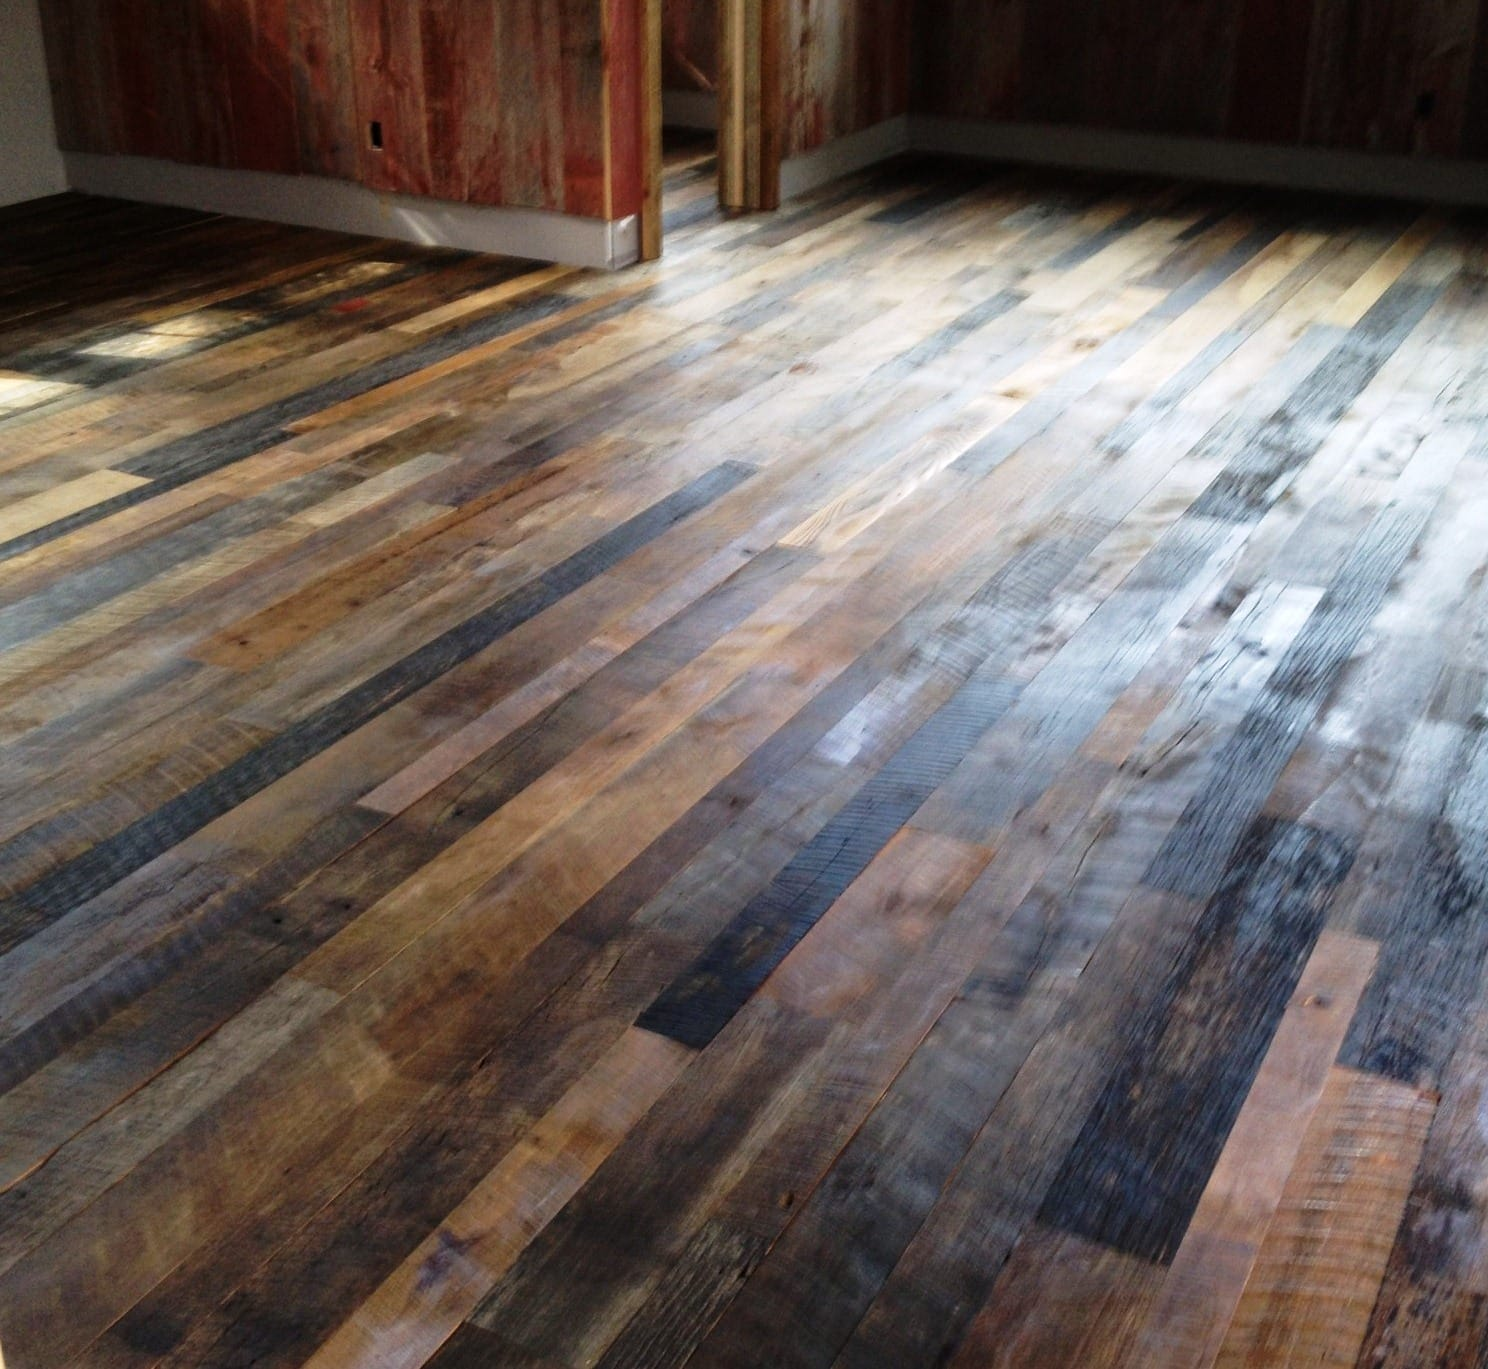 Floor360 recycled repurposed relocated for Recycled hardwood